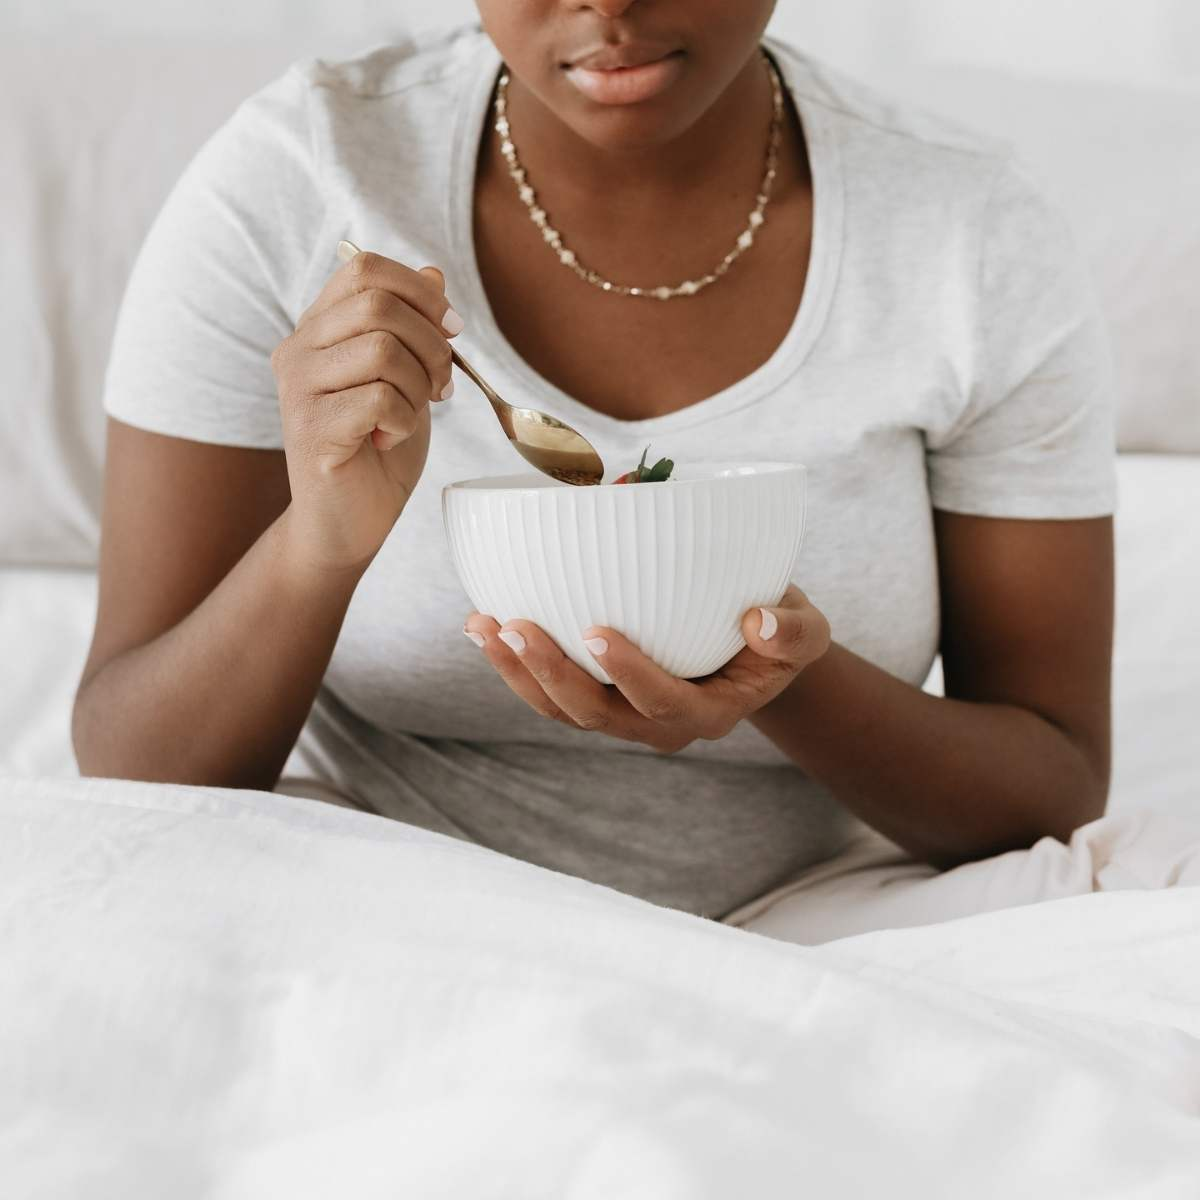 a woman sitting in bed eating breakfast out of a white bowl